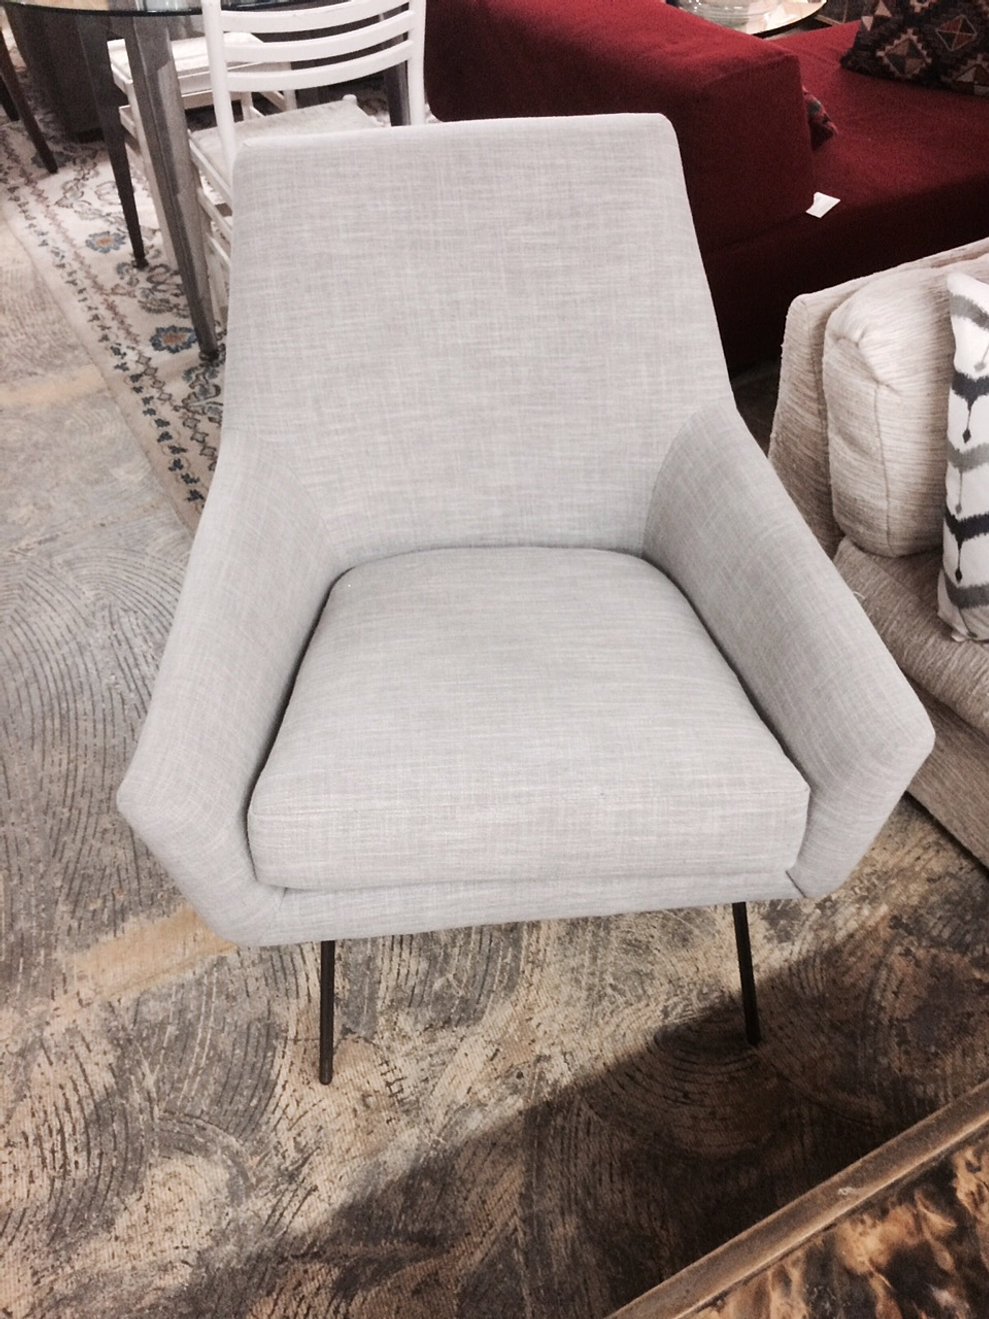 Furniture consignment stores in santa fe nm - West Elm Lucas Wire Chair